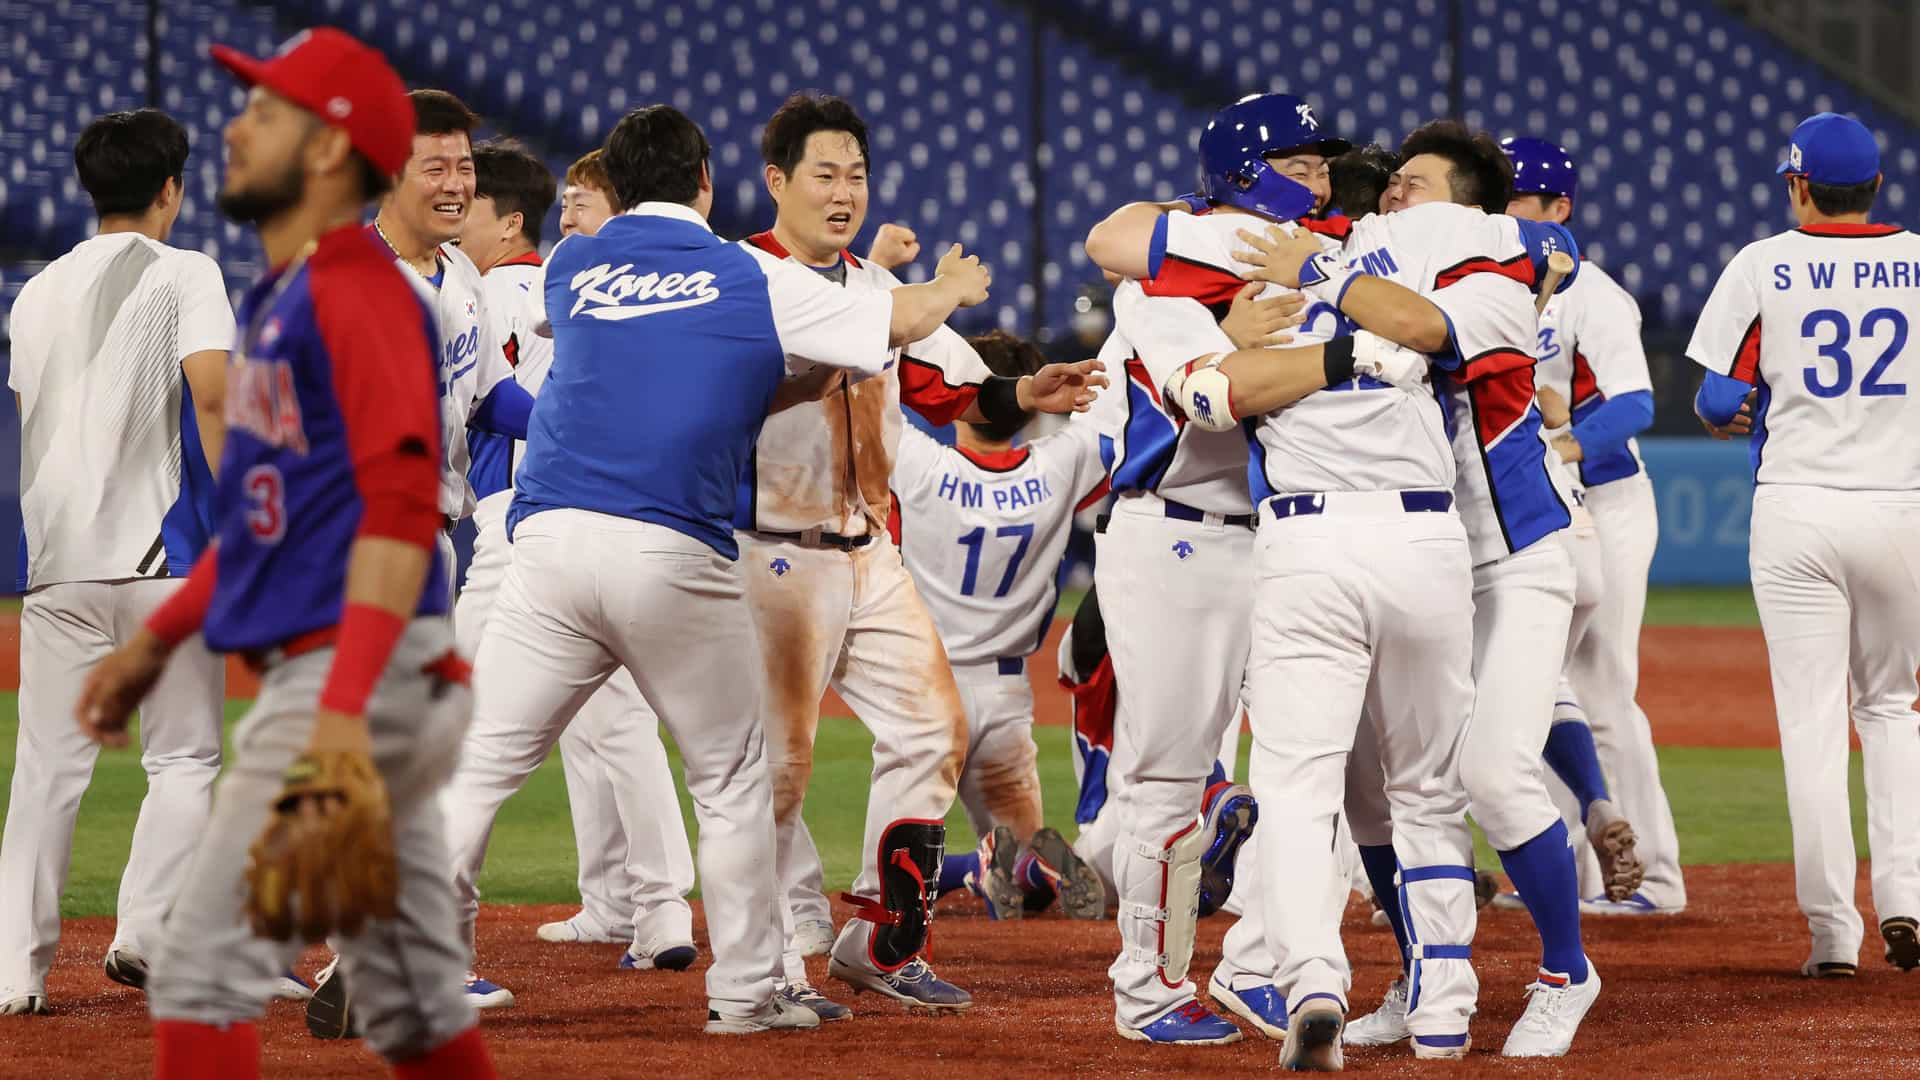 South Korean players rush to celebrate their walk-off win over the Dominican Republic in Olympic baseball playoff action Sunday.